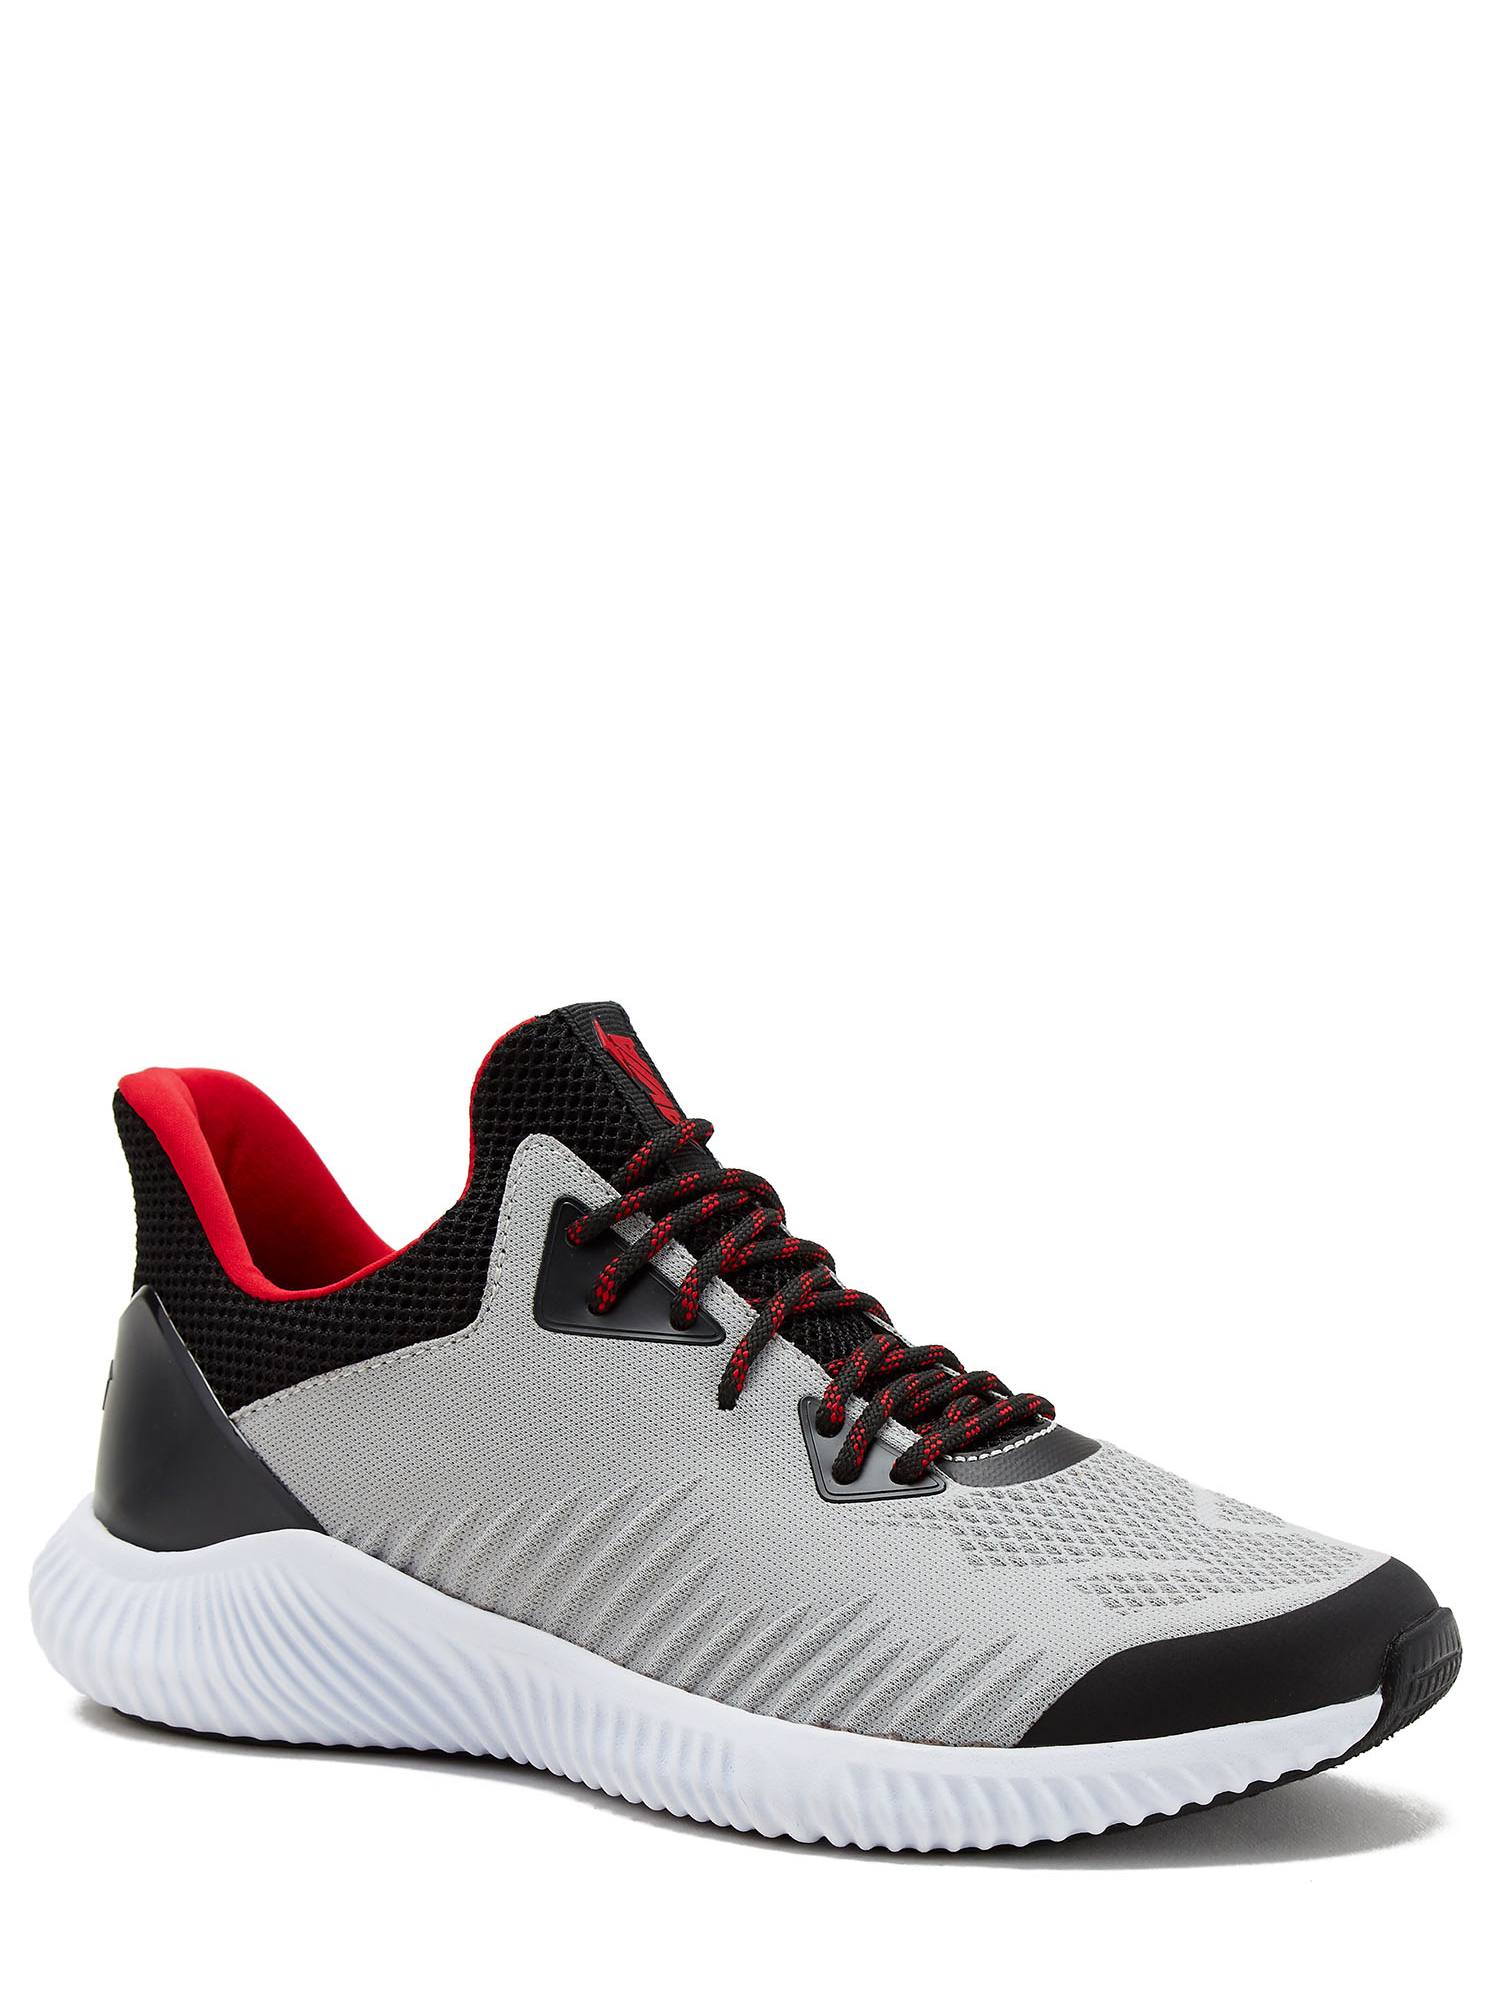 Click here to buy Mens Avia Runner 2.0 by E.S. Originals.